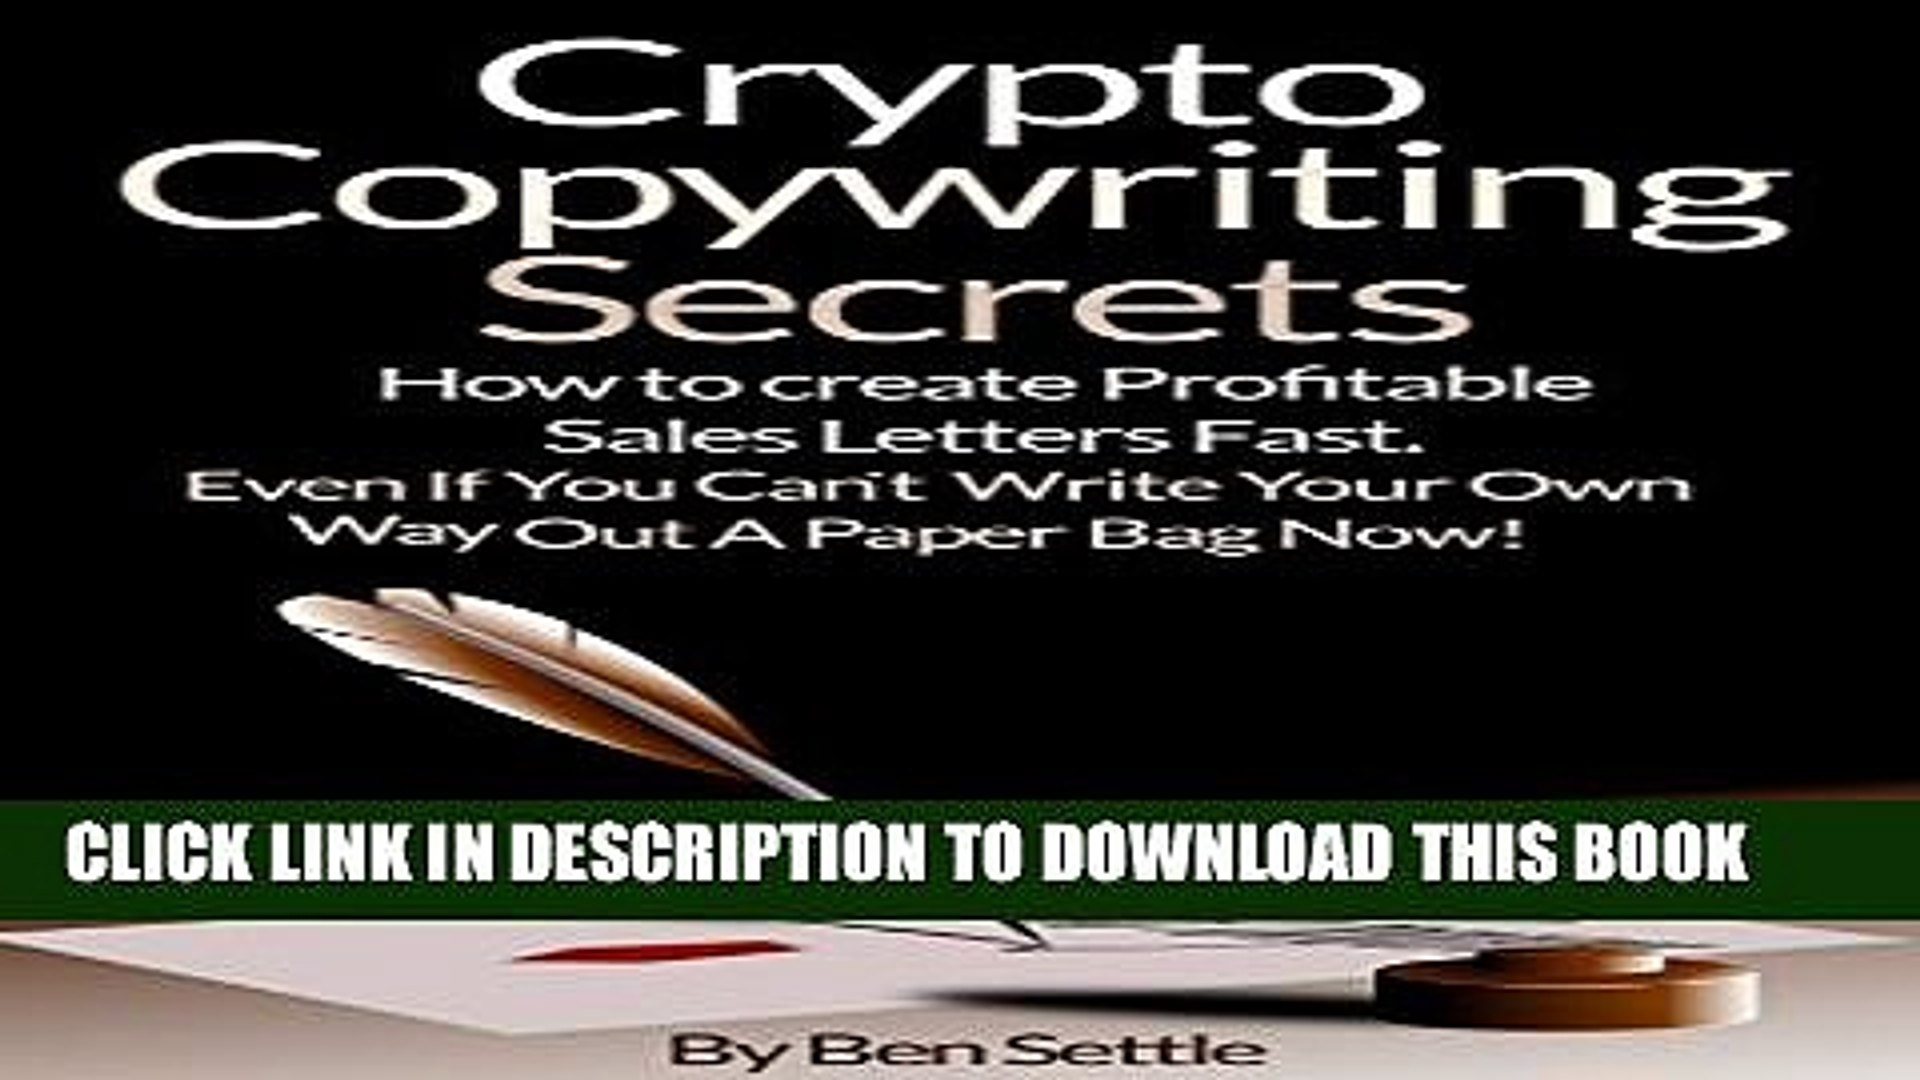 New Book Crypto Copywriting Secrets - How to create profitable sales letters fast - even if you